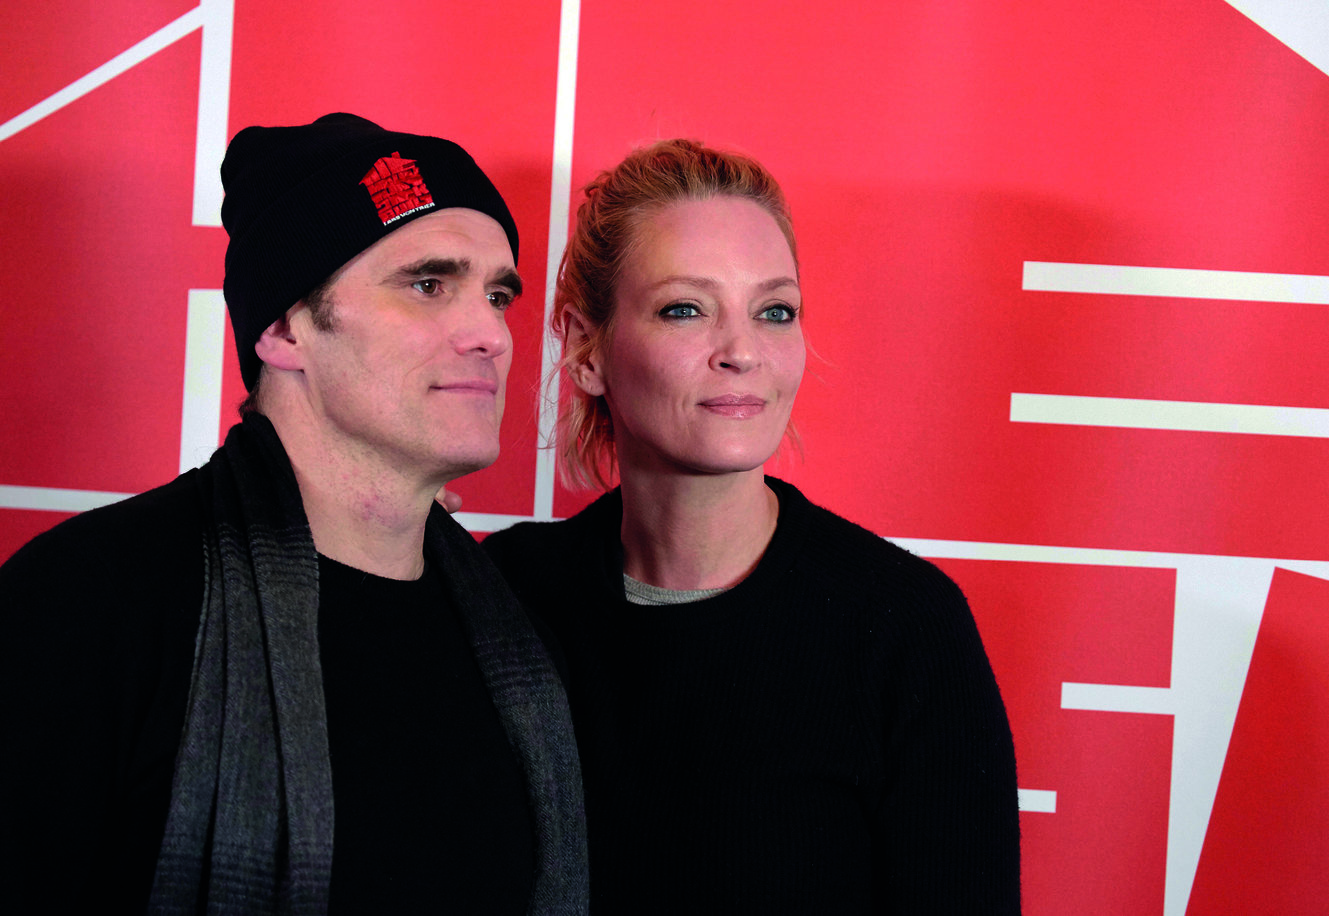 Lead role Matt Dillon og Uma Thurman, who plays one of the unfortunate women that crosses the serial killer Jack's way. At the press conference in Dalsland, Sweden in February.